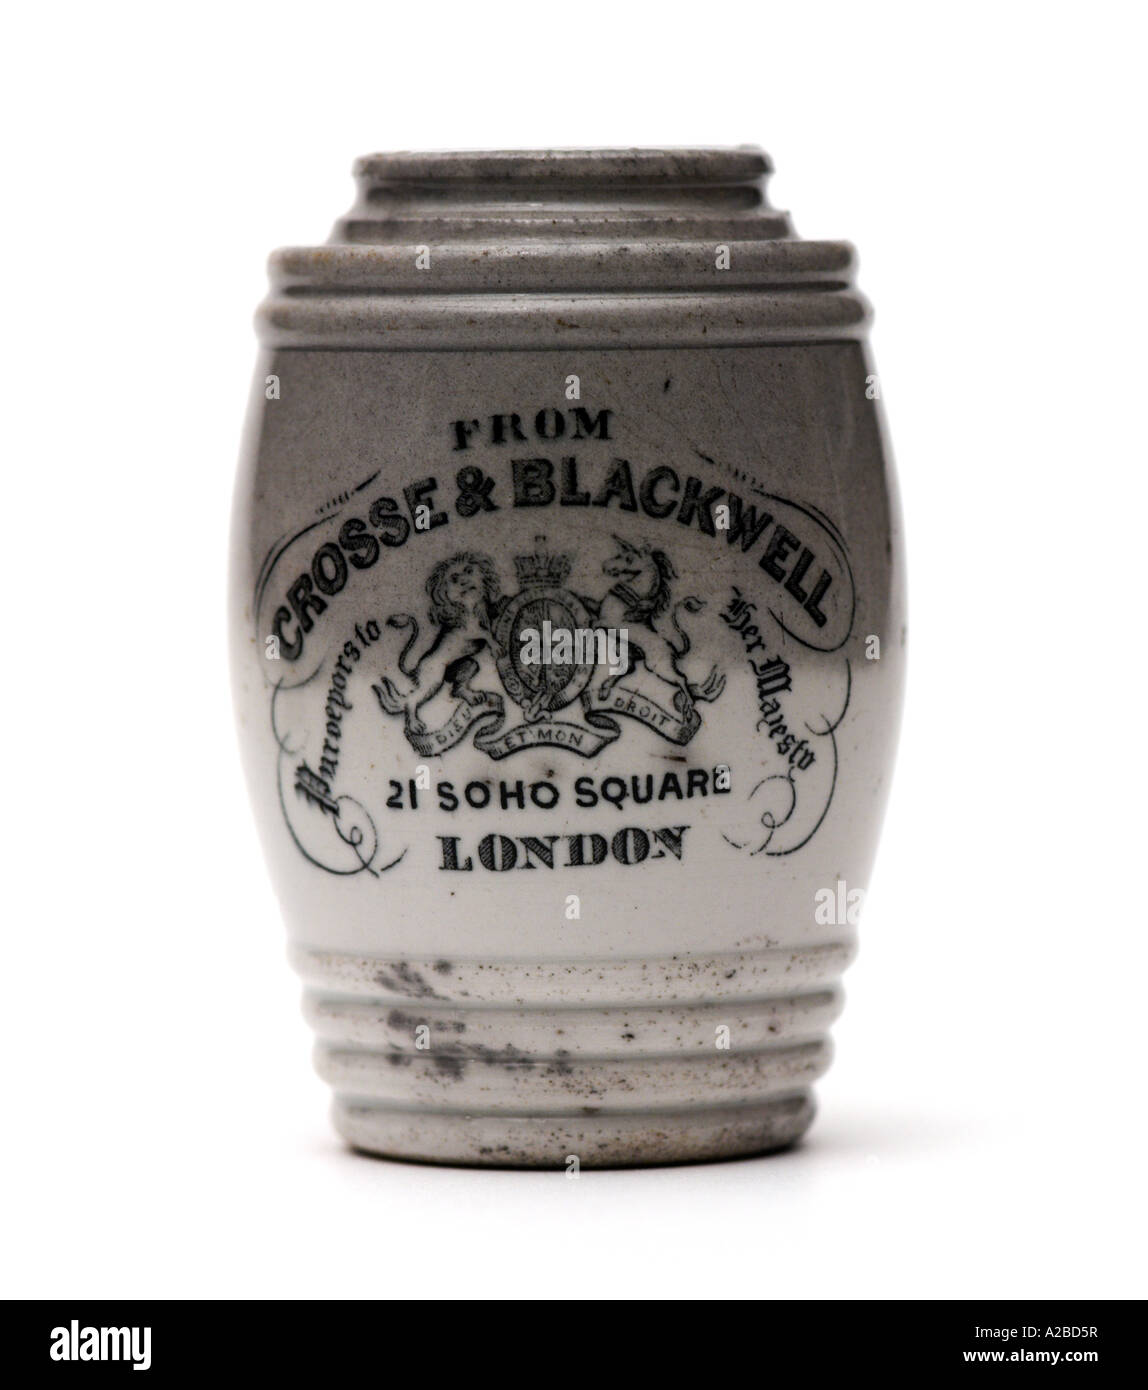 Crosse and Blackwell Pot early 20th Century - Stock Image